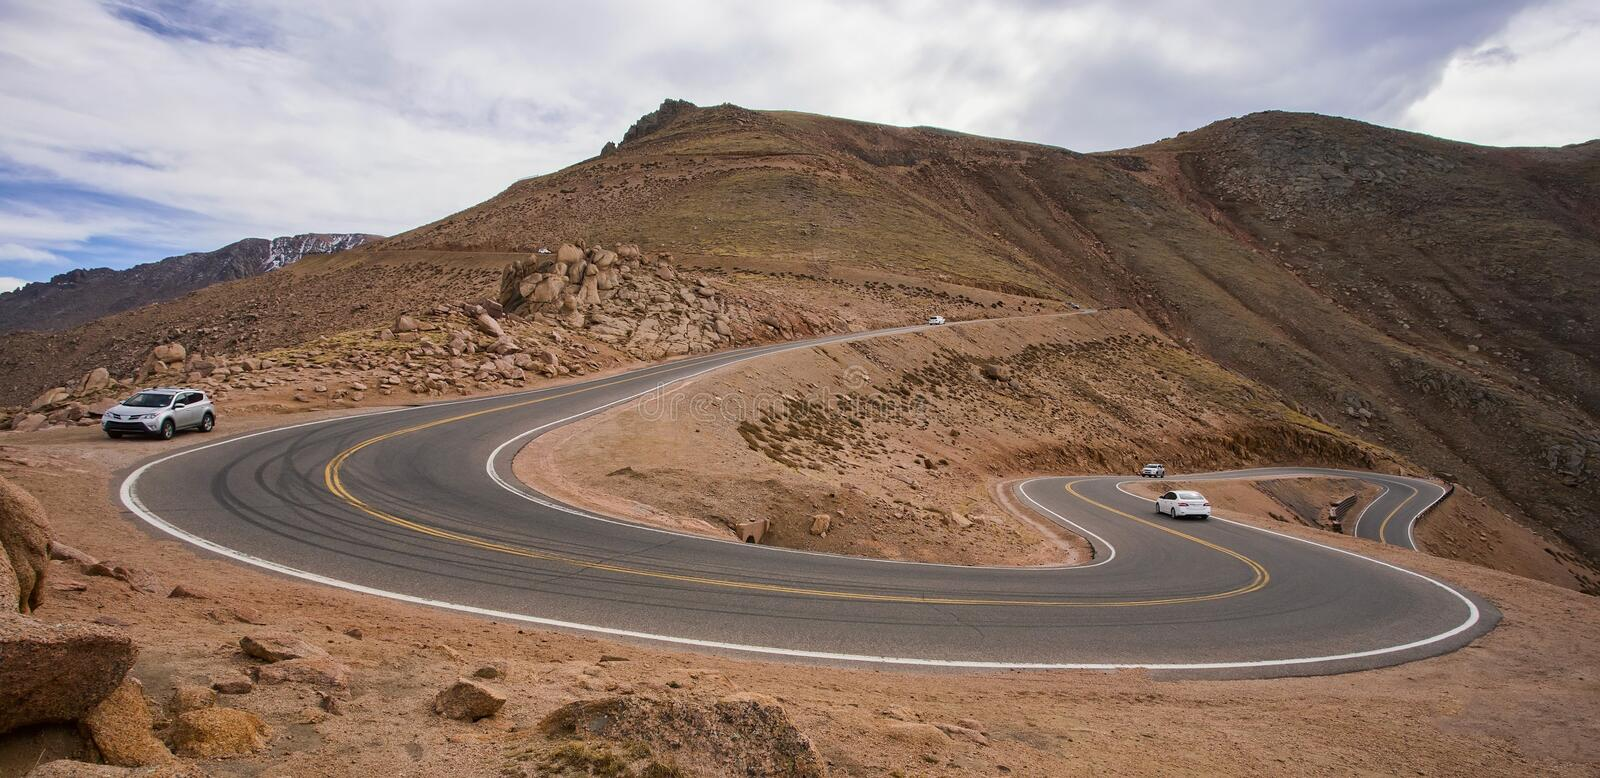 Cars on the steep, winding road up Pikes Peak, Colorado stock photo